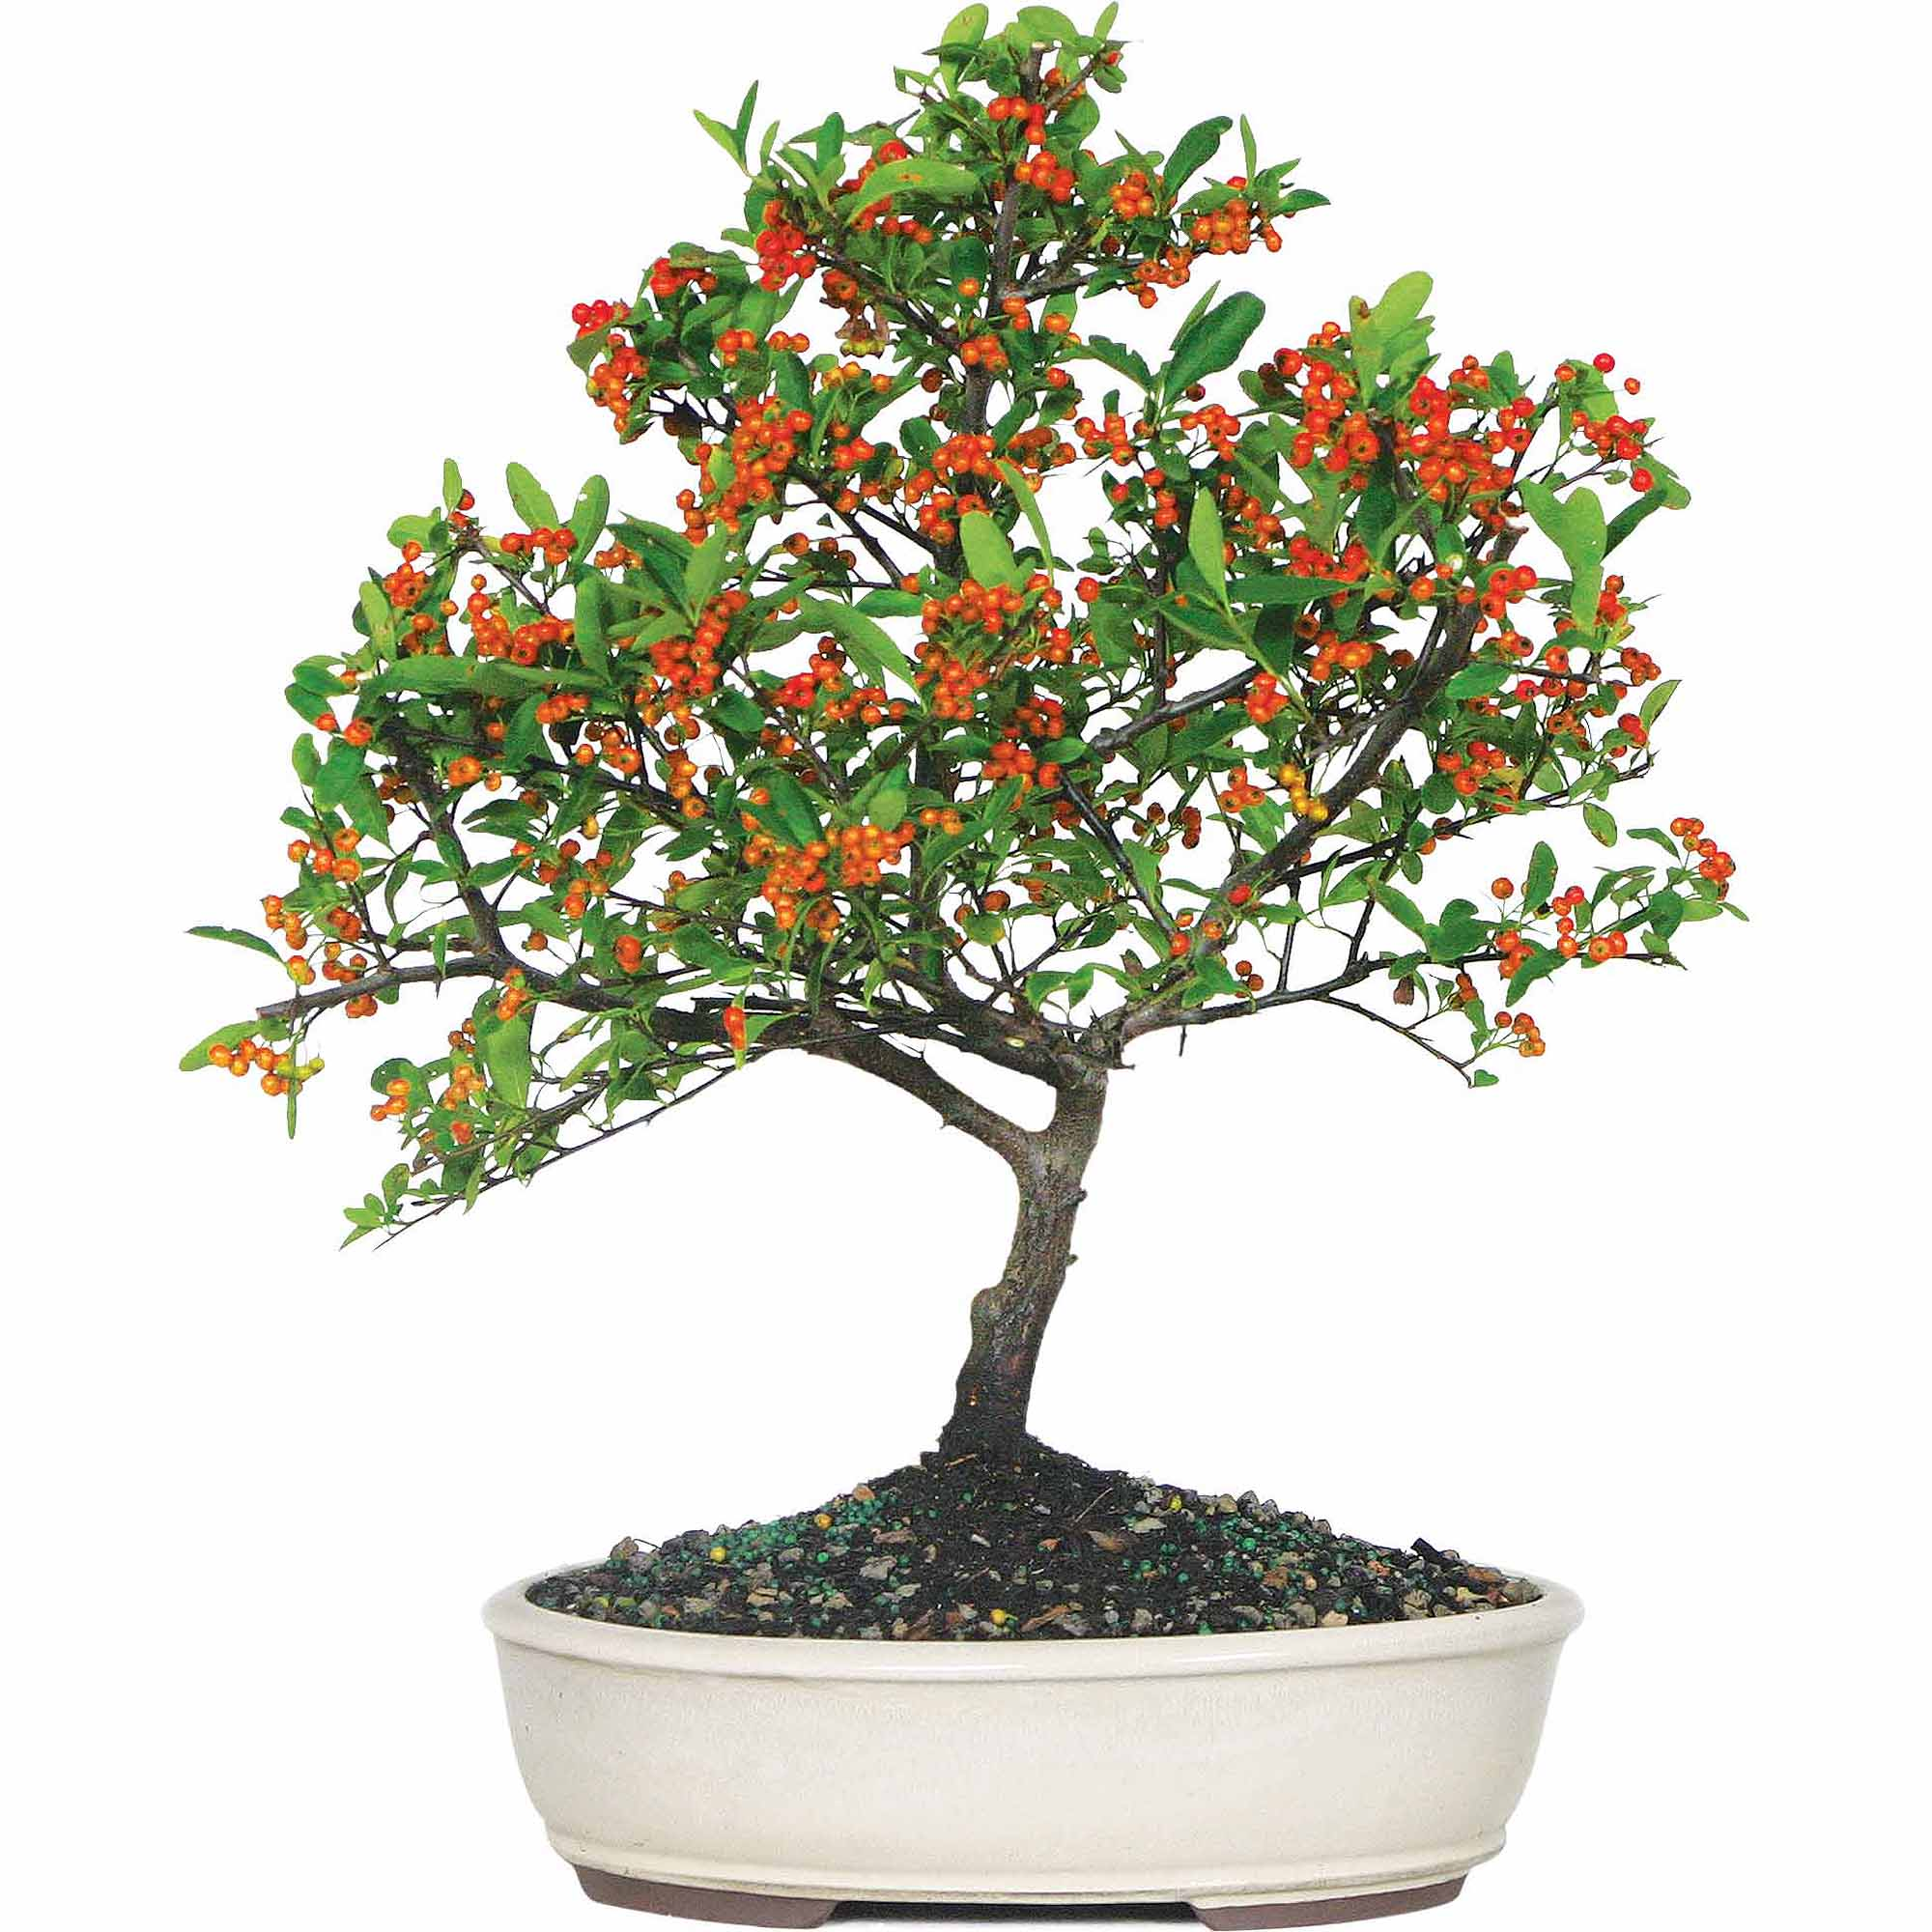 Brussel's Dwarf Pyracantha Bonsai Medium (Outdoor) by Brussel's Bonsai